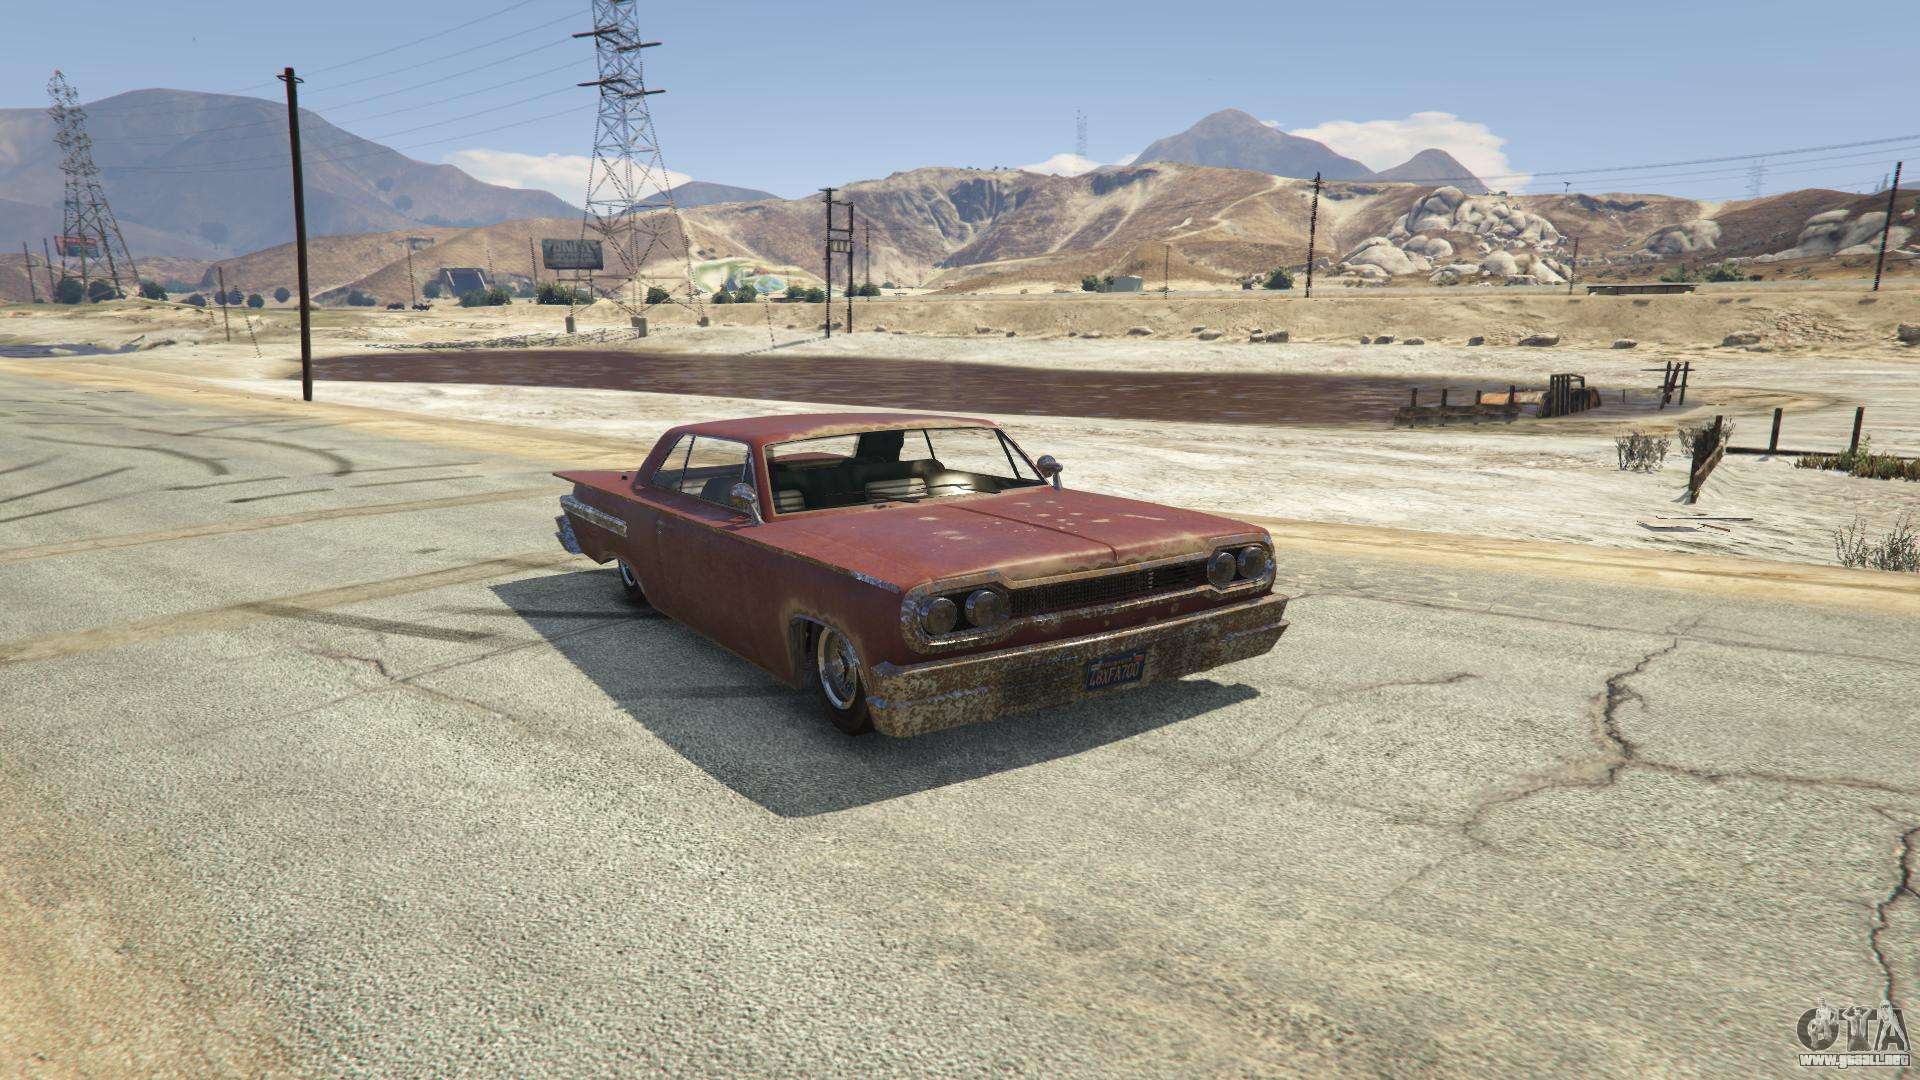 Voodoo de GTA 5 - vista frontal